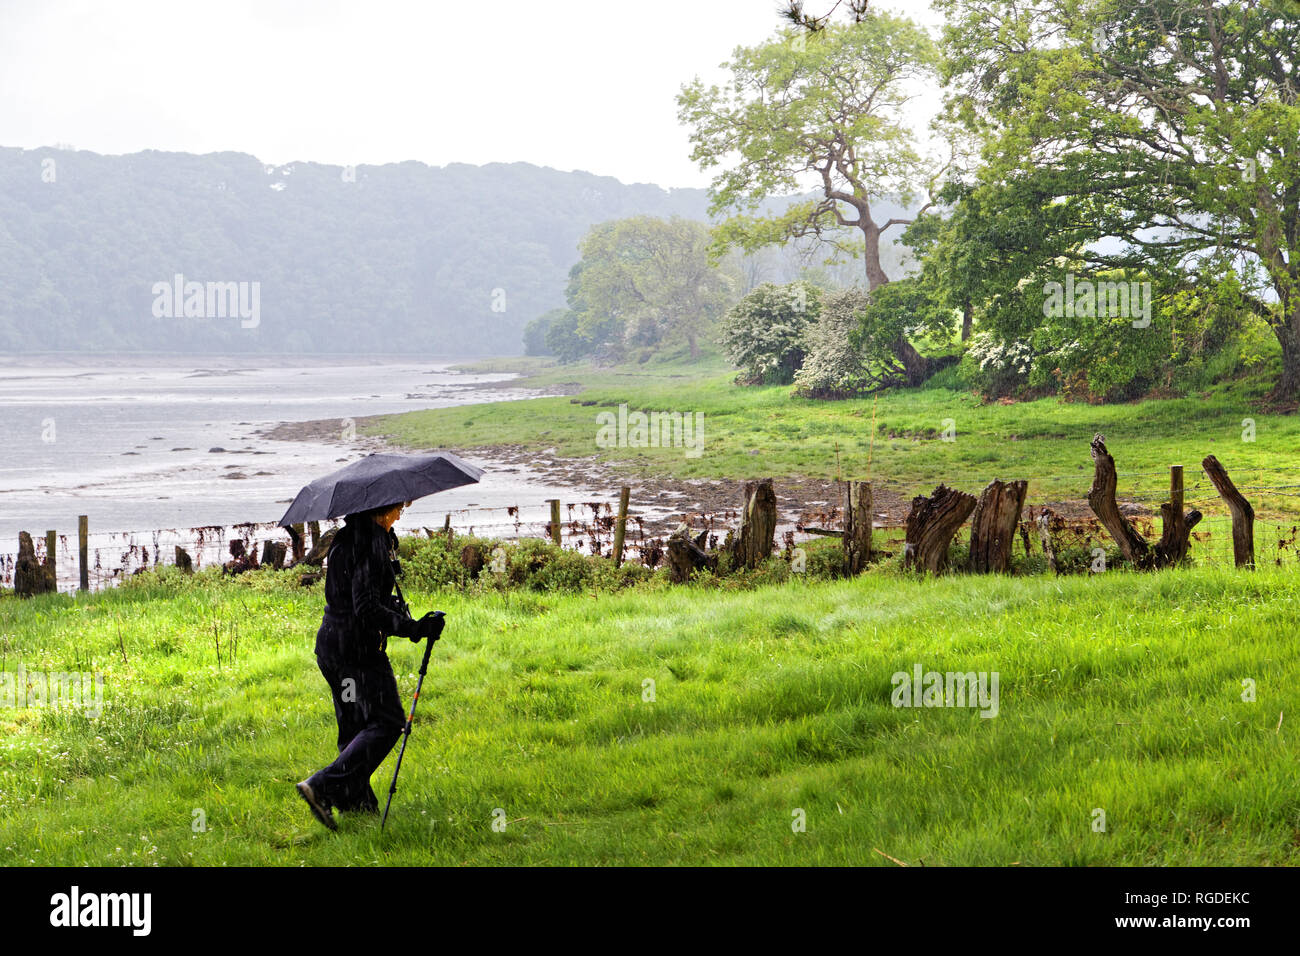 42,517.02917 Woman holding an umbrella while hiking in the rain in a hazy wet green pasture by trees fence stumps and water shore of an estuary lake - Stock Image